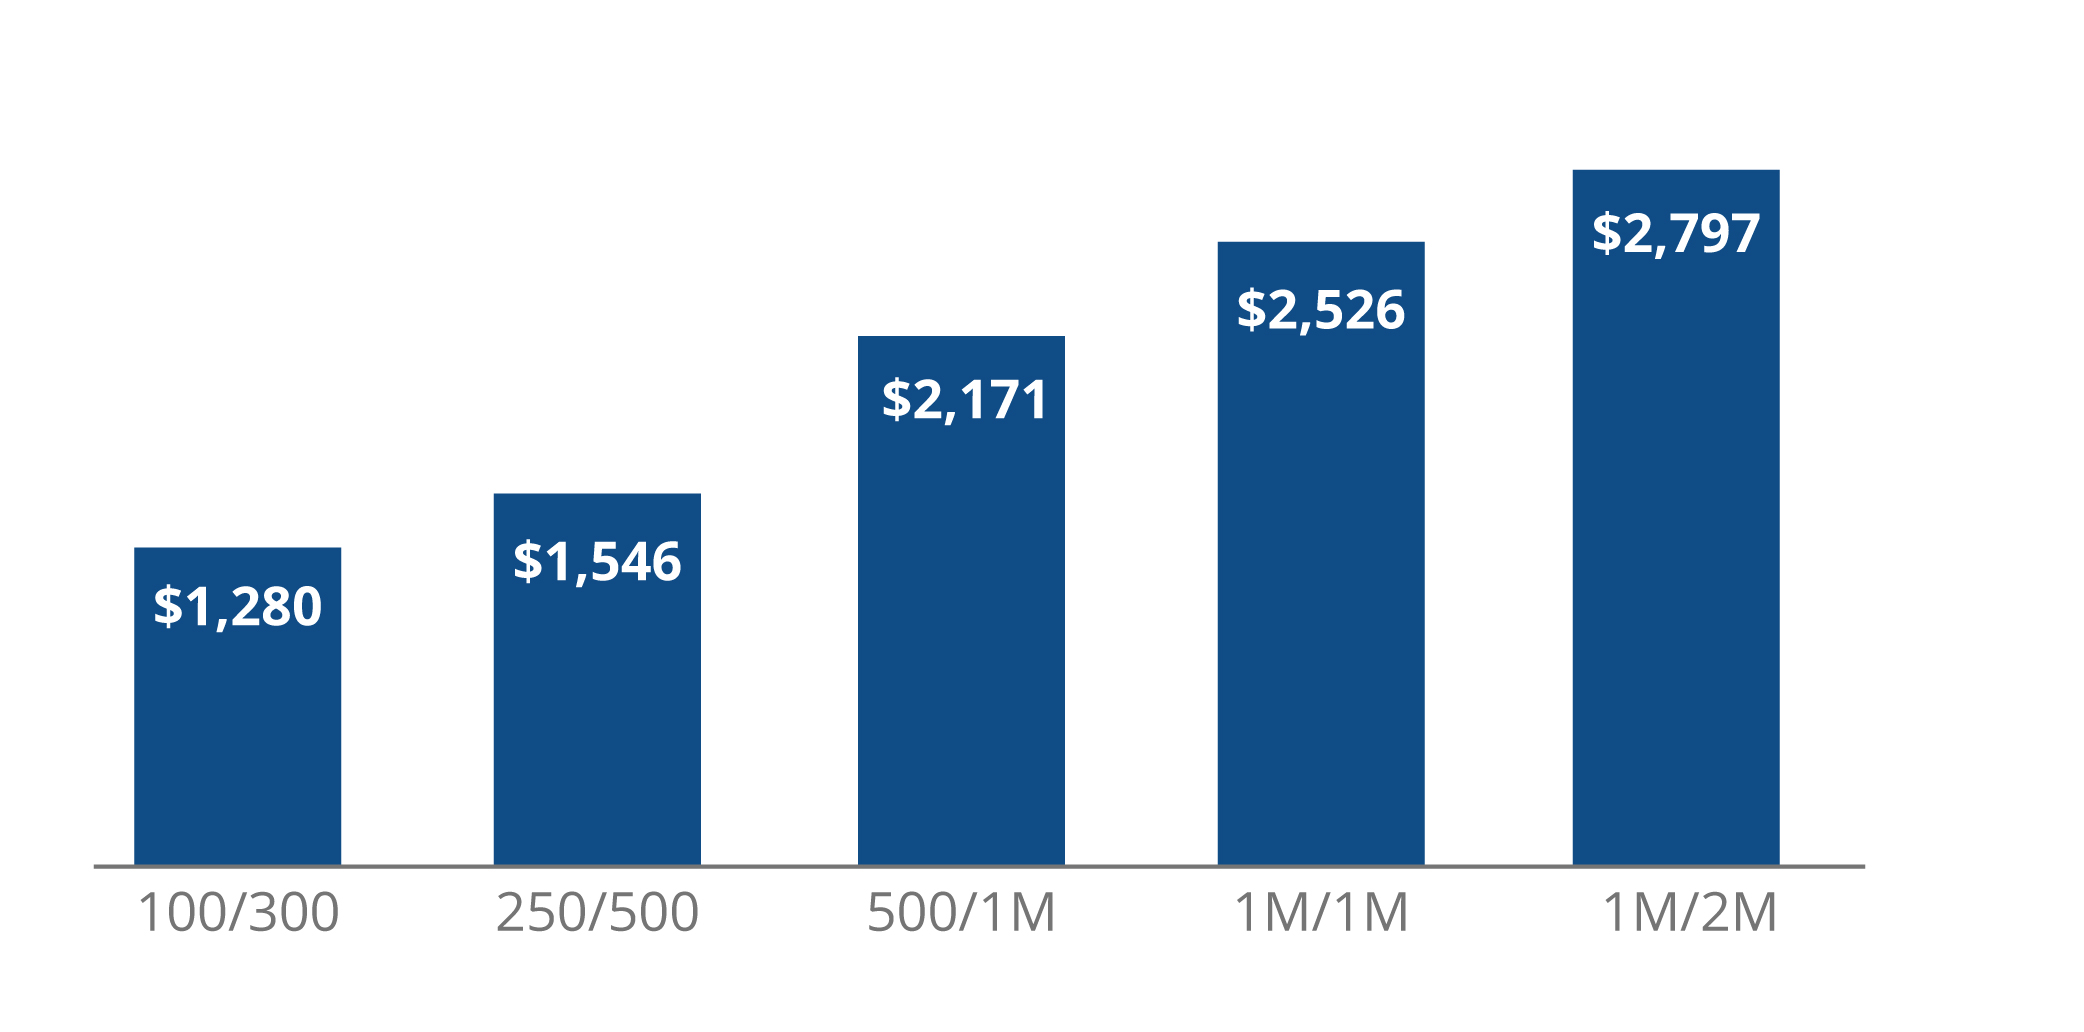 Average Cost By Policy Limit for Solo Attorneys